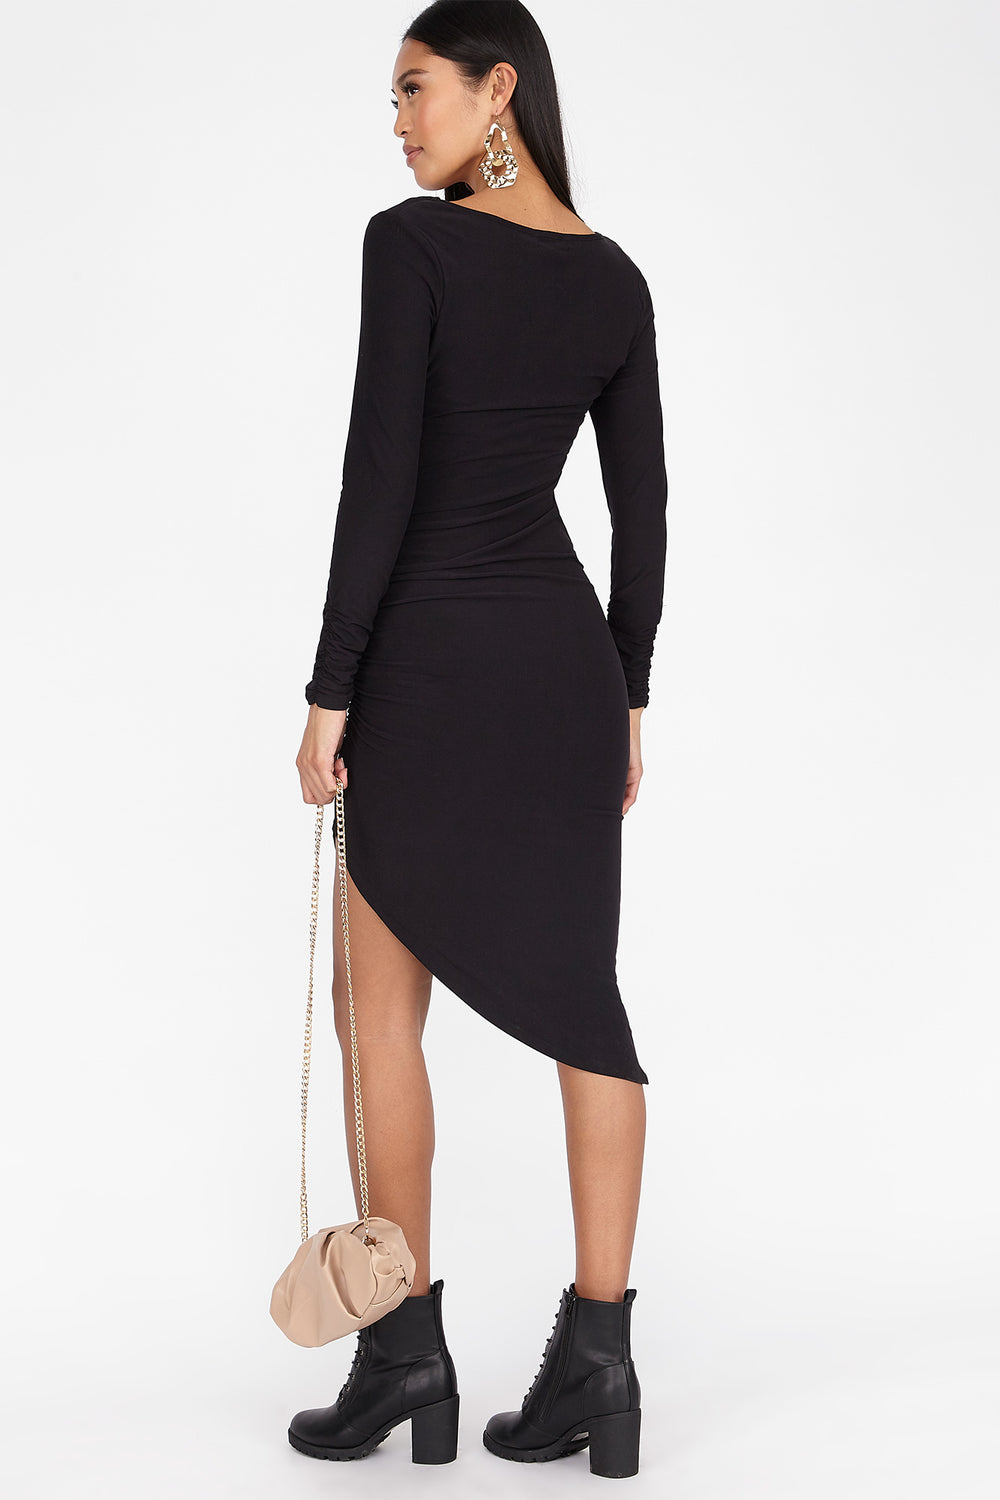 Soft Asymmetrical Side Ruched Long Sleeve Dress Black